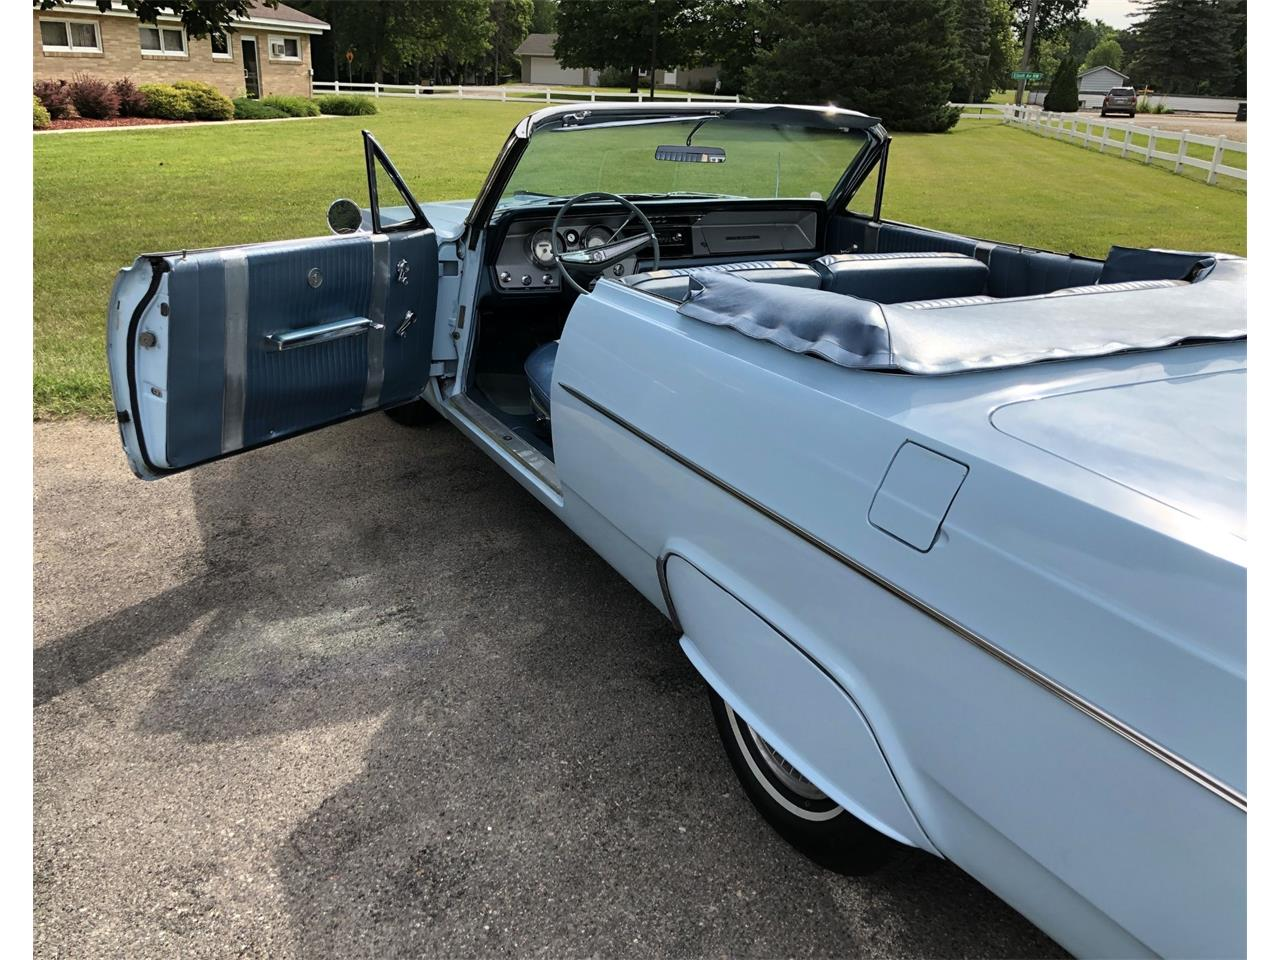 1963 Buick LeSabre (CC-1243223) for sale in Maple Lake, Minnesota